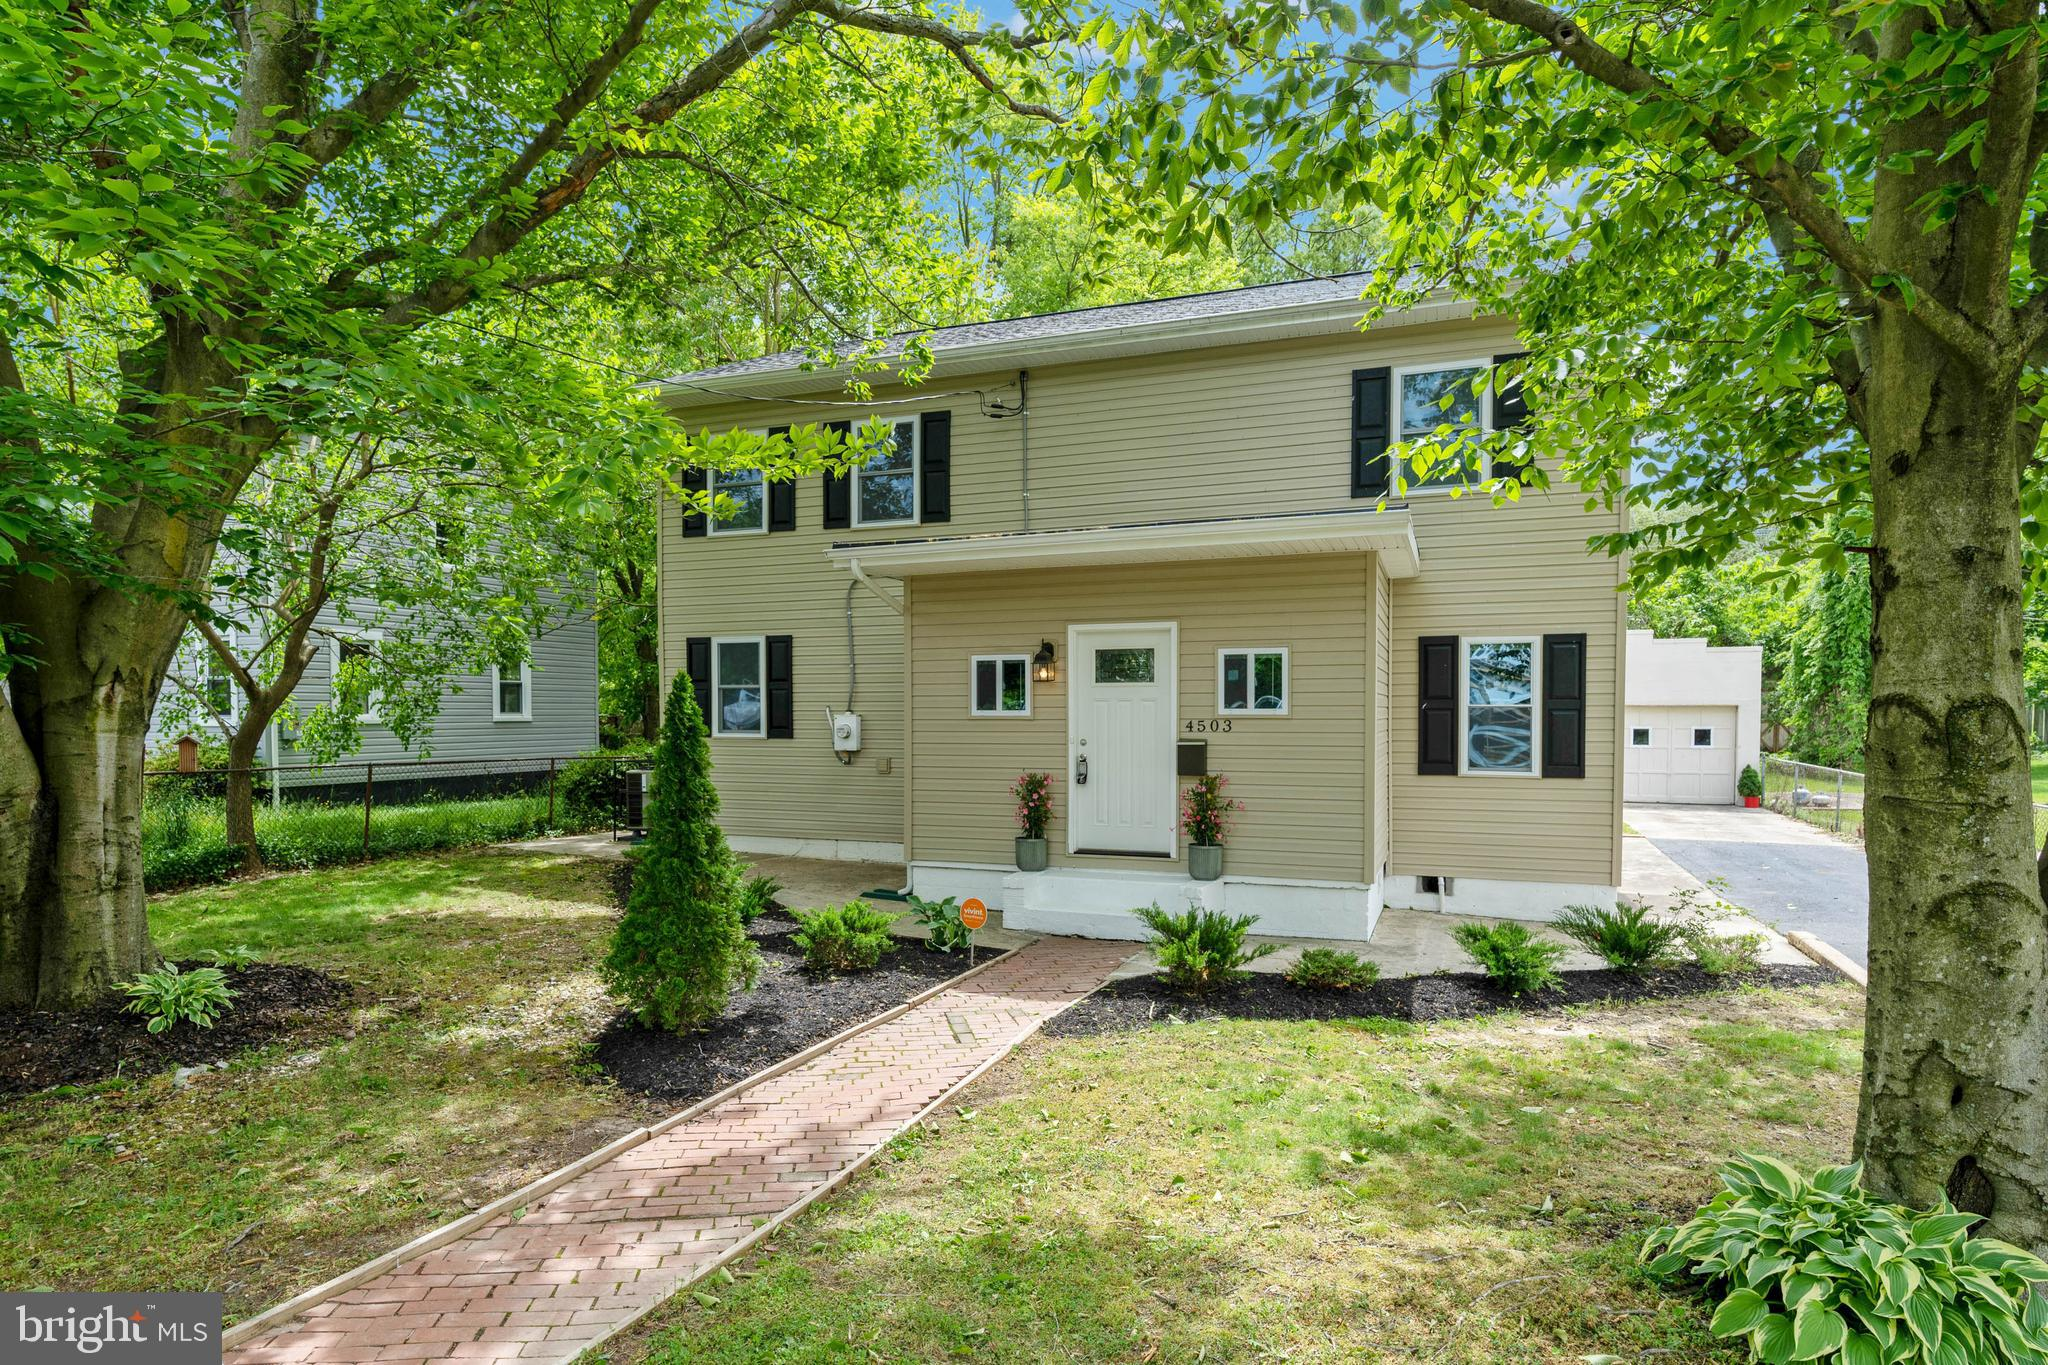 Beautifully renovated 5 bedroom, 3 full bathroom colonial in the charming Town of Morningside! This home has all you desire and more! Beautiful open concept main level that boasts a fully renovated kitchen with plenty of storage, white cabinets, stainless steel appliances, granite countertops and an island. The main level has hardwood floors, a laundry room with washer and dryer; as well as 1 bedroom and 1 full bath. Upstairs, you have 4 bedrooms and 2 full baths. The  master bedroom boasts an updated and spacious ensuite with dual vanities and granite countertops.  Recent upgrades include: bathrooms, windows, doors, flooring, cabinets, fixtures, lighting, plumbing, roof, exterior siding and a dual zone HVAC. This house's layout, features and huge backyard are great for indoor and outdoor entertainment! A one car garage plus a drive way offers plenty of parking options. Minutes away from Andrews Air Force Base with easy access to major commuter routes including I-495, Suitland Parkway, Allentown Road and Branch Avenue; as well as a short drive to the MGM Grand and National Harbor. This amazing property will not last!Virtual Tour Link: https://vimeo.com/420959360